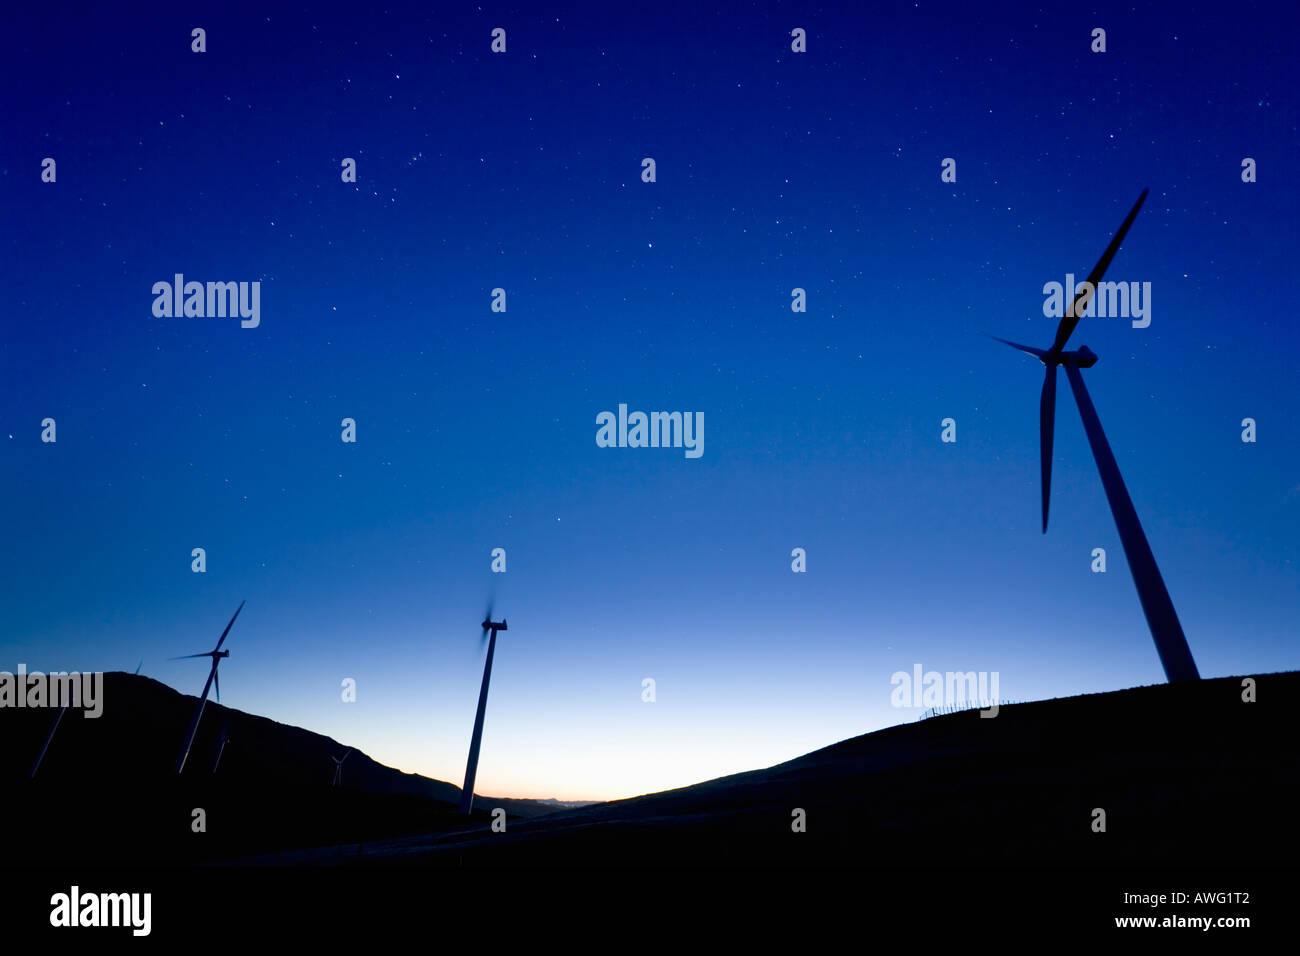 Windmühlen im Morgengrauen in Te Apiti Windpark, Palmerston North, Manawatu Nordinsel, Neuseeland Stockbild